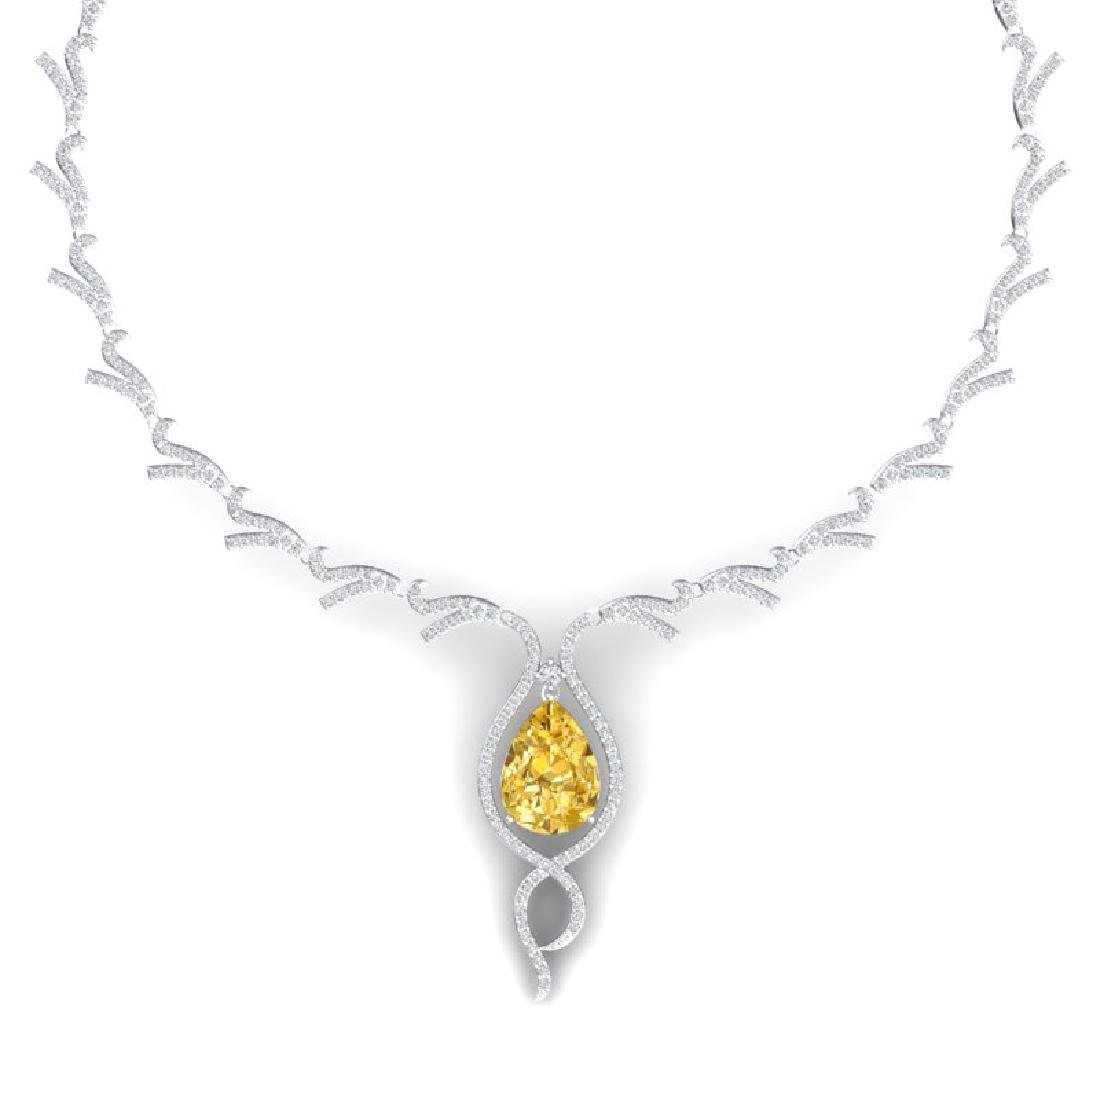 23.02 CTW Royalty Canary Citrine & VS Diamond Necklace